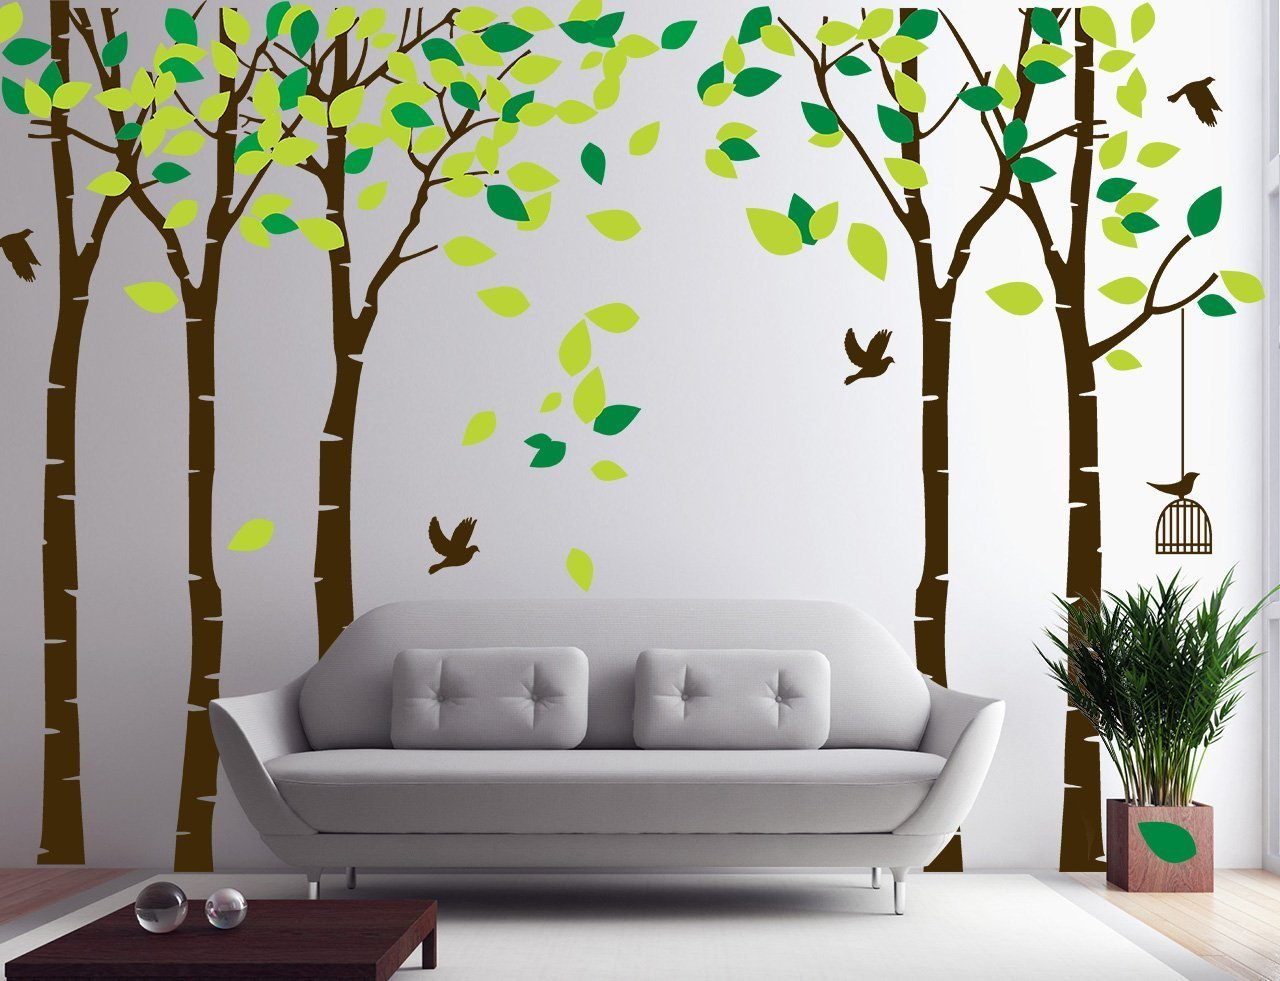 Amaonm 104''x71'' Giant Large Jungle 5 Trees Wall Decals Green Leaves and Fly Birds Wallpaper Wall Decor DIY Vinyl Wall Stickers for Kids Bedroom Living Room Nursery Rooms Offices Walls (Brown Tree) by Amaonm